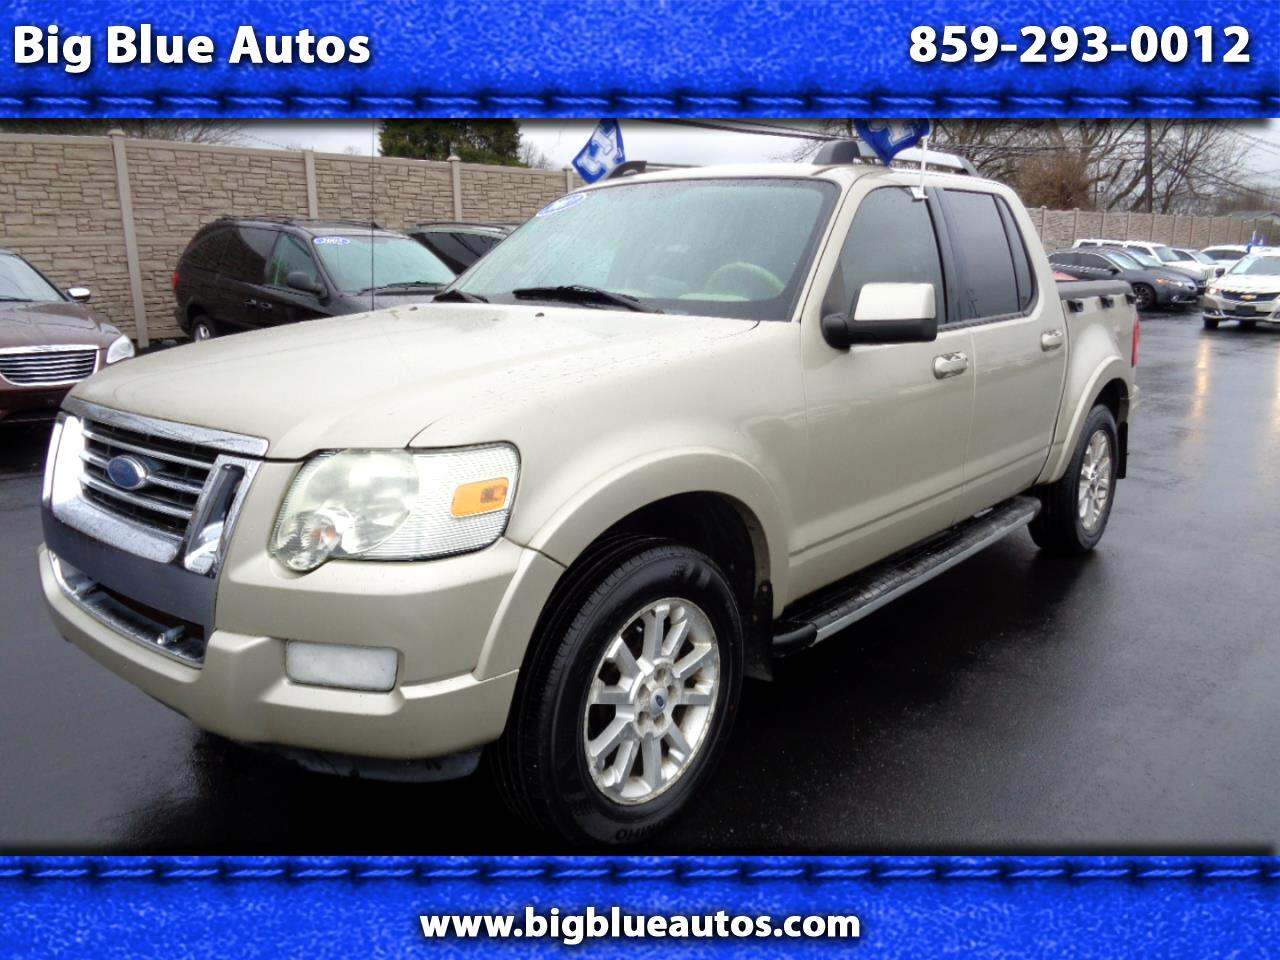 Ford Explorer Sport Trac 4WD 4dr XLT 2007